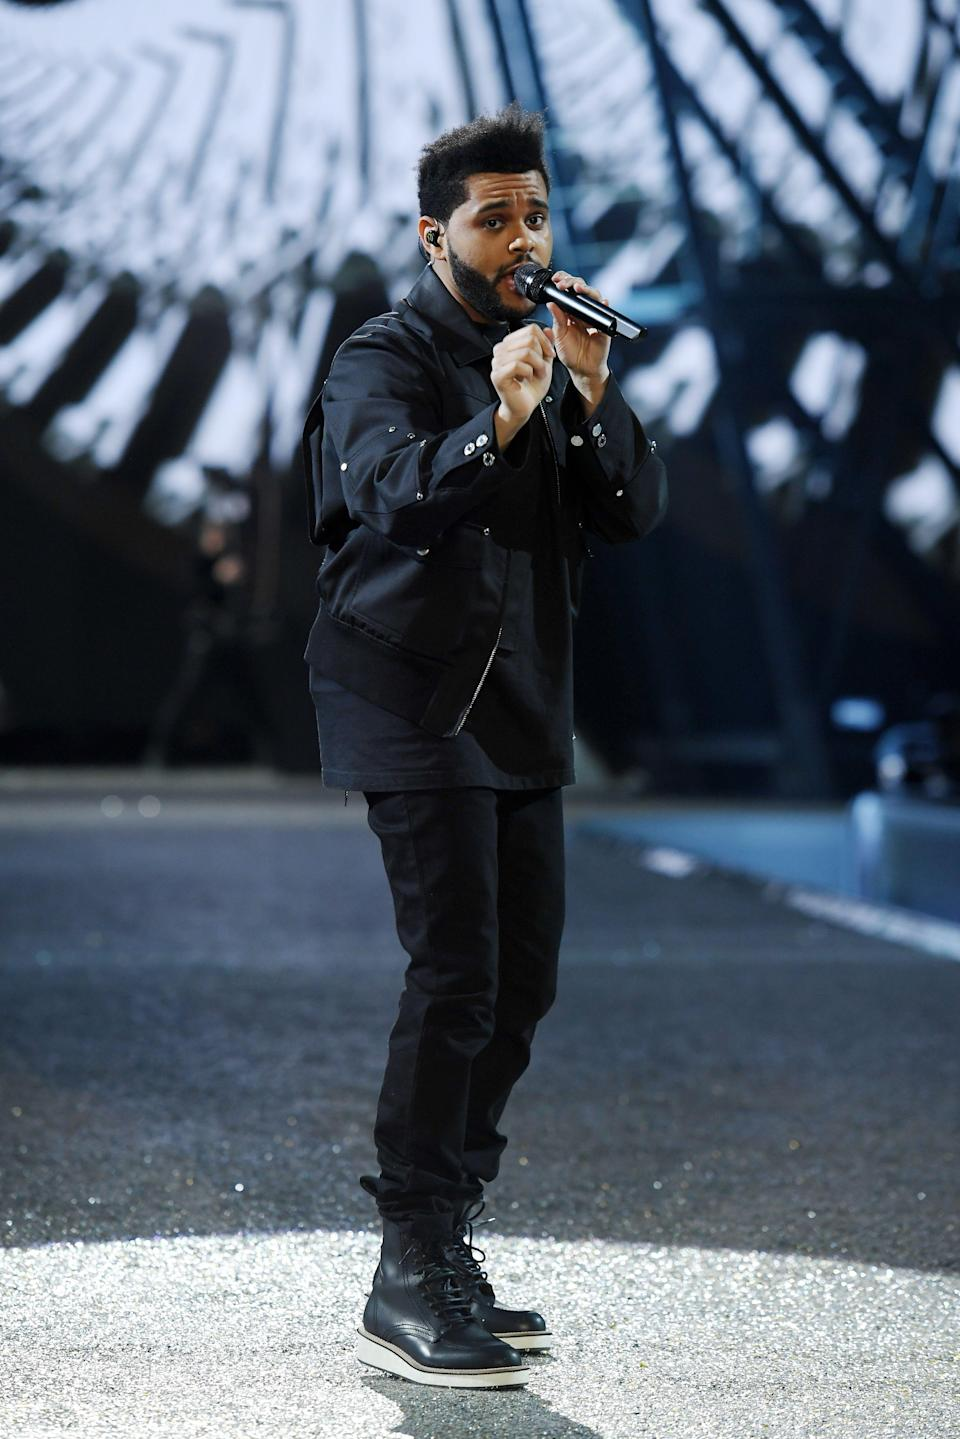 """<p><a href=""""https://www.cosmopolitan.com/entertainment/celebs/a35266086/the-weeknd-net-worth/"""" rel=""""nofollow noopener"""" target=""""_blank"""" data-ylk=""""slk:The Weeknd"""" class=""""link rapid-noclick-resp"""">The Weeknd</a> is easily one of the biggest stars of our generation, and after listening through the stack of albums he's blessed fans with, it feels like he can do no wrong. The Weeknd is on the track to legend status—he's going to be taking the stage during Super Bowl LV for the Pepsi Halftime Show next month, which p much catapults any performer into serious levels of superstardom. As the kids say, it's free real estate. (Literally, because <a href=""""https://www.cosmopolitan.com/entertainment/tv/a30752231/why-jennifer-lopez-shakira-not-paid-super-bowl-halftime-show/"""" rel=""""nofollow noopener"""" target=""""_blank"""" data-ylk=""""slk:Abel likely won't make a single cent"""" class=""""link rapid-noclick-resp"""">Abel likely won't make a single cent</a>, but uh, more on that later 😬).</p><p>Before The Weeknd was...well, The Weeknd, he was Abel Tesfaye—a newcomer to the world of R&B who <a href=""""https://www.businessinsider.com/how-the-weeknd-got-his-start-on-youtube-2015-8"""" rel=""""nofollow noopener"""" target=""""_blank"""" data-ylk=""""slk:anonymously posted videos on YouTube under the name &quot;xoxxxoooxo."""" class=""""link rapid-noclick-resp"""">anonymously posted videos on YouTube under the name """"xoxxxoooxo.</a>"""" We now know the new Abel as a pop hit-making machine, but in all honesty, some of his best songs are actually hella moody—no offense to <em><a href=""""https://www.cosmopolitan.com/entertainment/music/a30998500/the-weeknd-after-hours-bella-hadid-lyrics-explained/"""" rel=""""nofollow noopener"""" target=""""_blank"""" data-ylk=""""slk:After Hours"""" class=""""link rapid-noclick-resp"""">After Hours</a></em> or <em>Starboy</em>. Since you deserve to know all of Abel's hits (and not just the mainstream ones), I've completed my civic duty by ranking all of his best bops. It was not an easy task, but hey, someone's gotta do it. ¯\_(ツ)_/¯</p"""